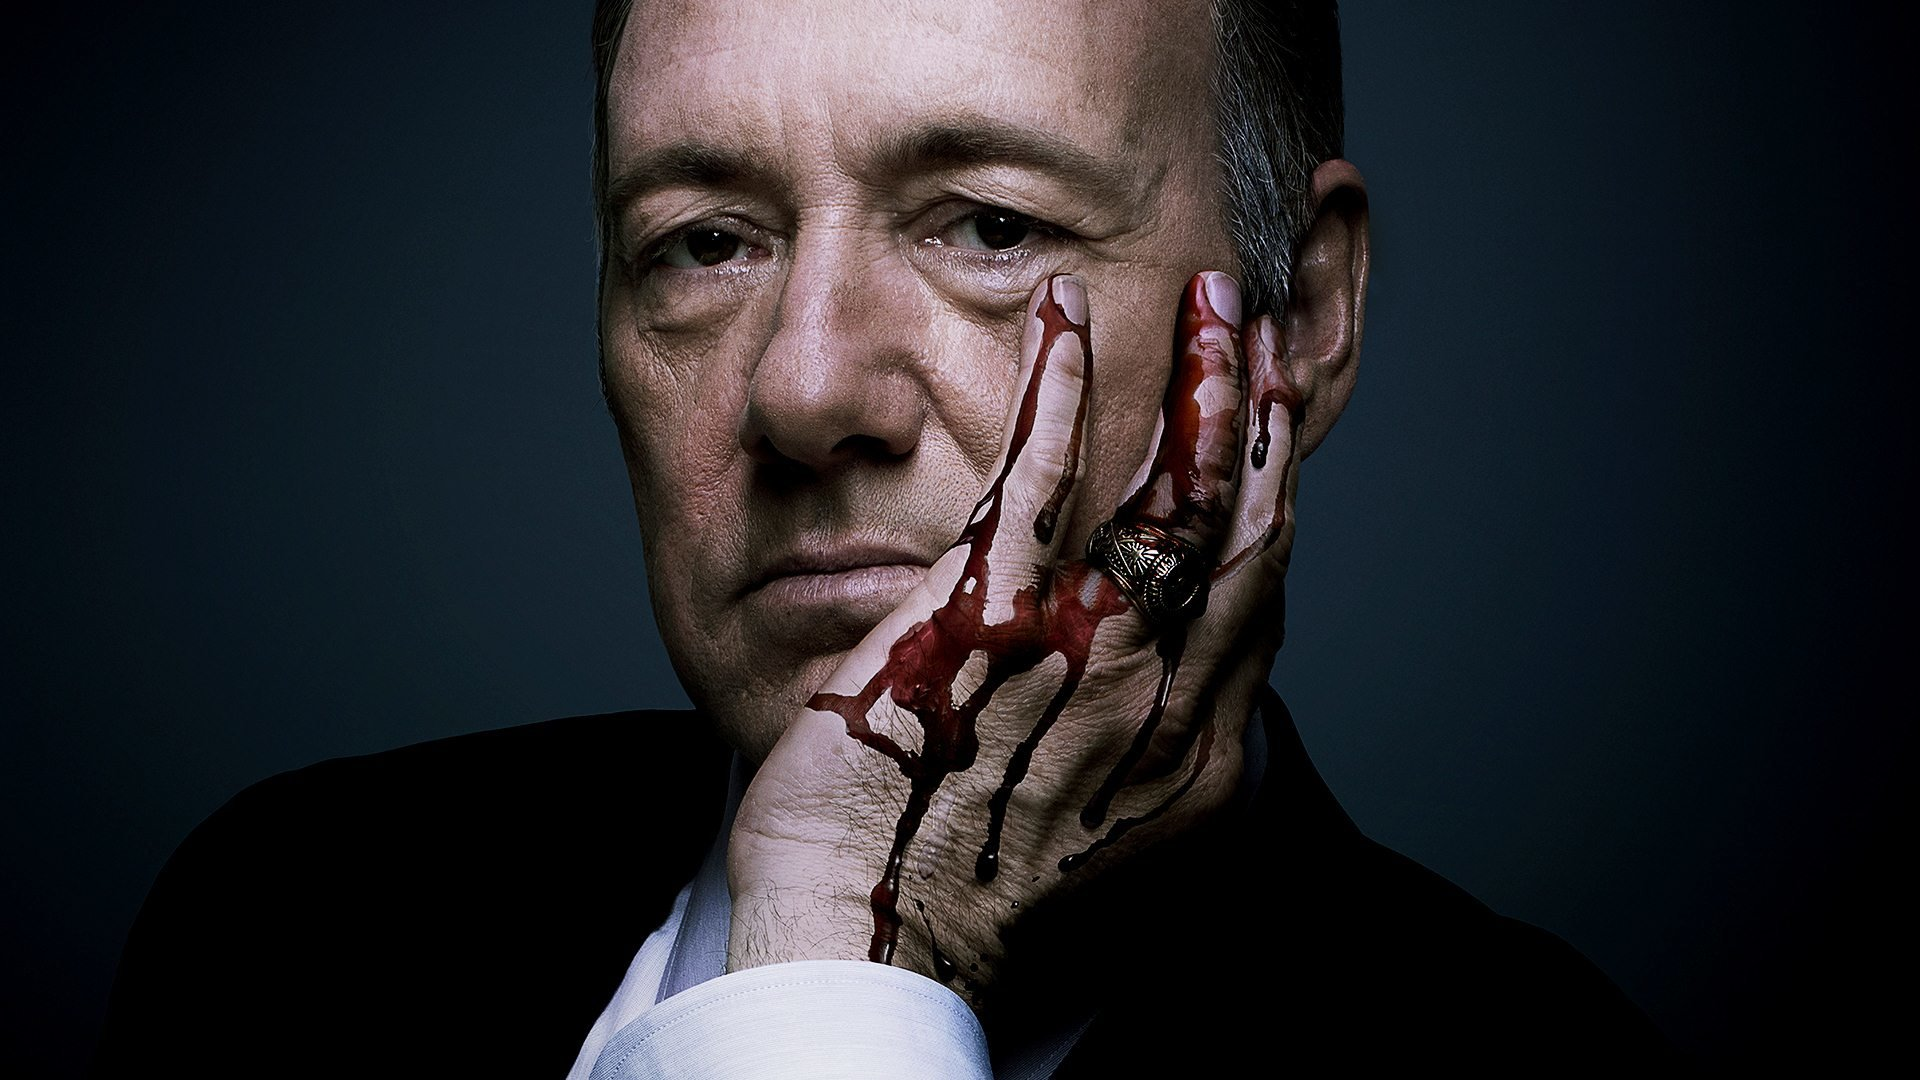 High Resolution House Of Cards Full Hd Wallpaper Id 185617 For Desktop